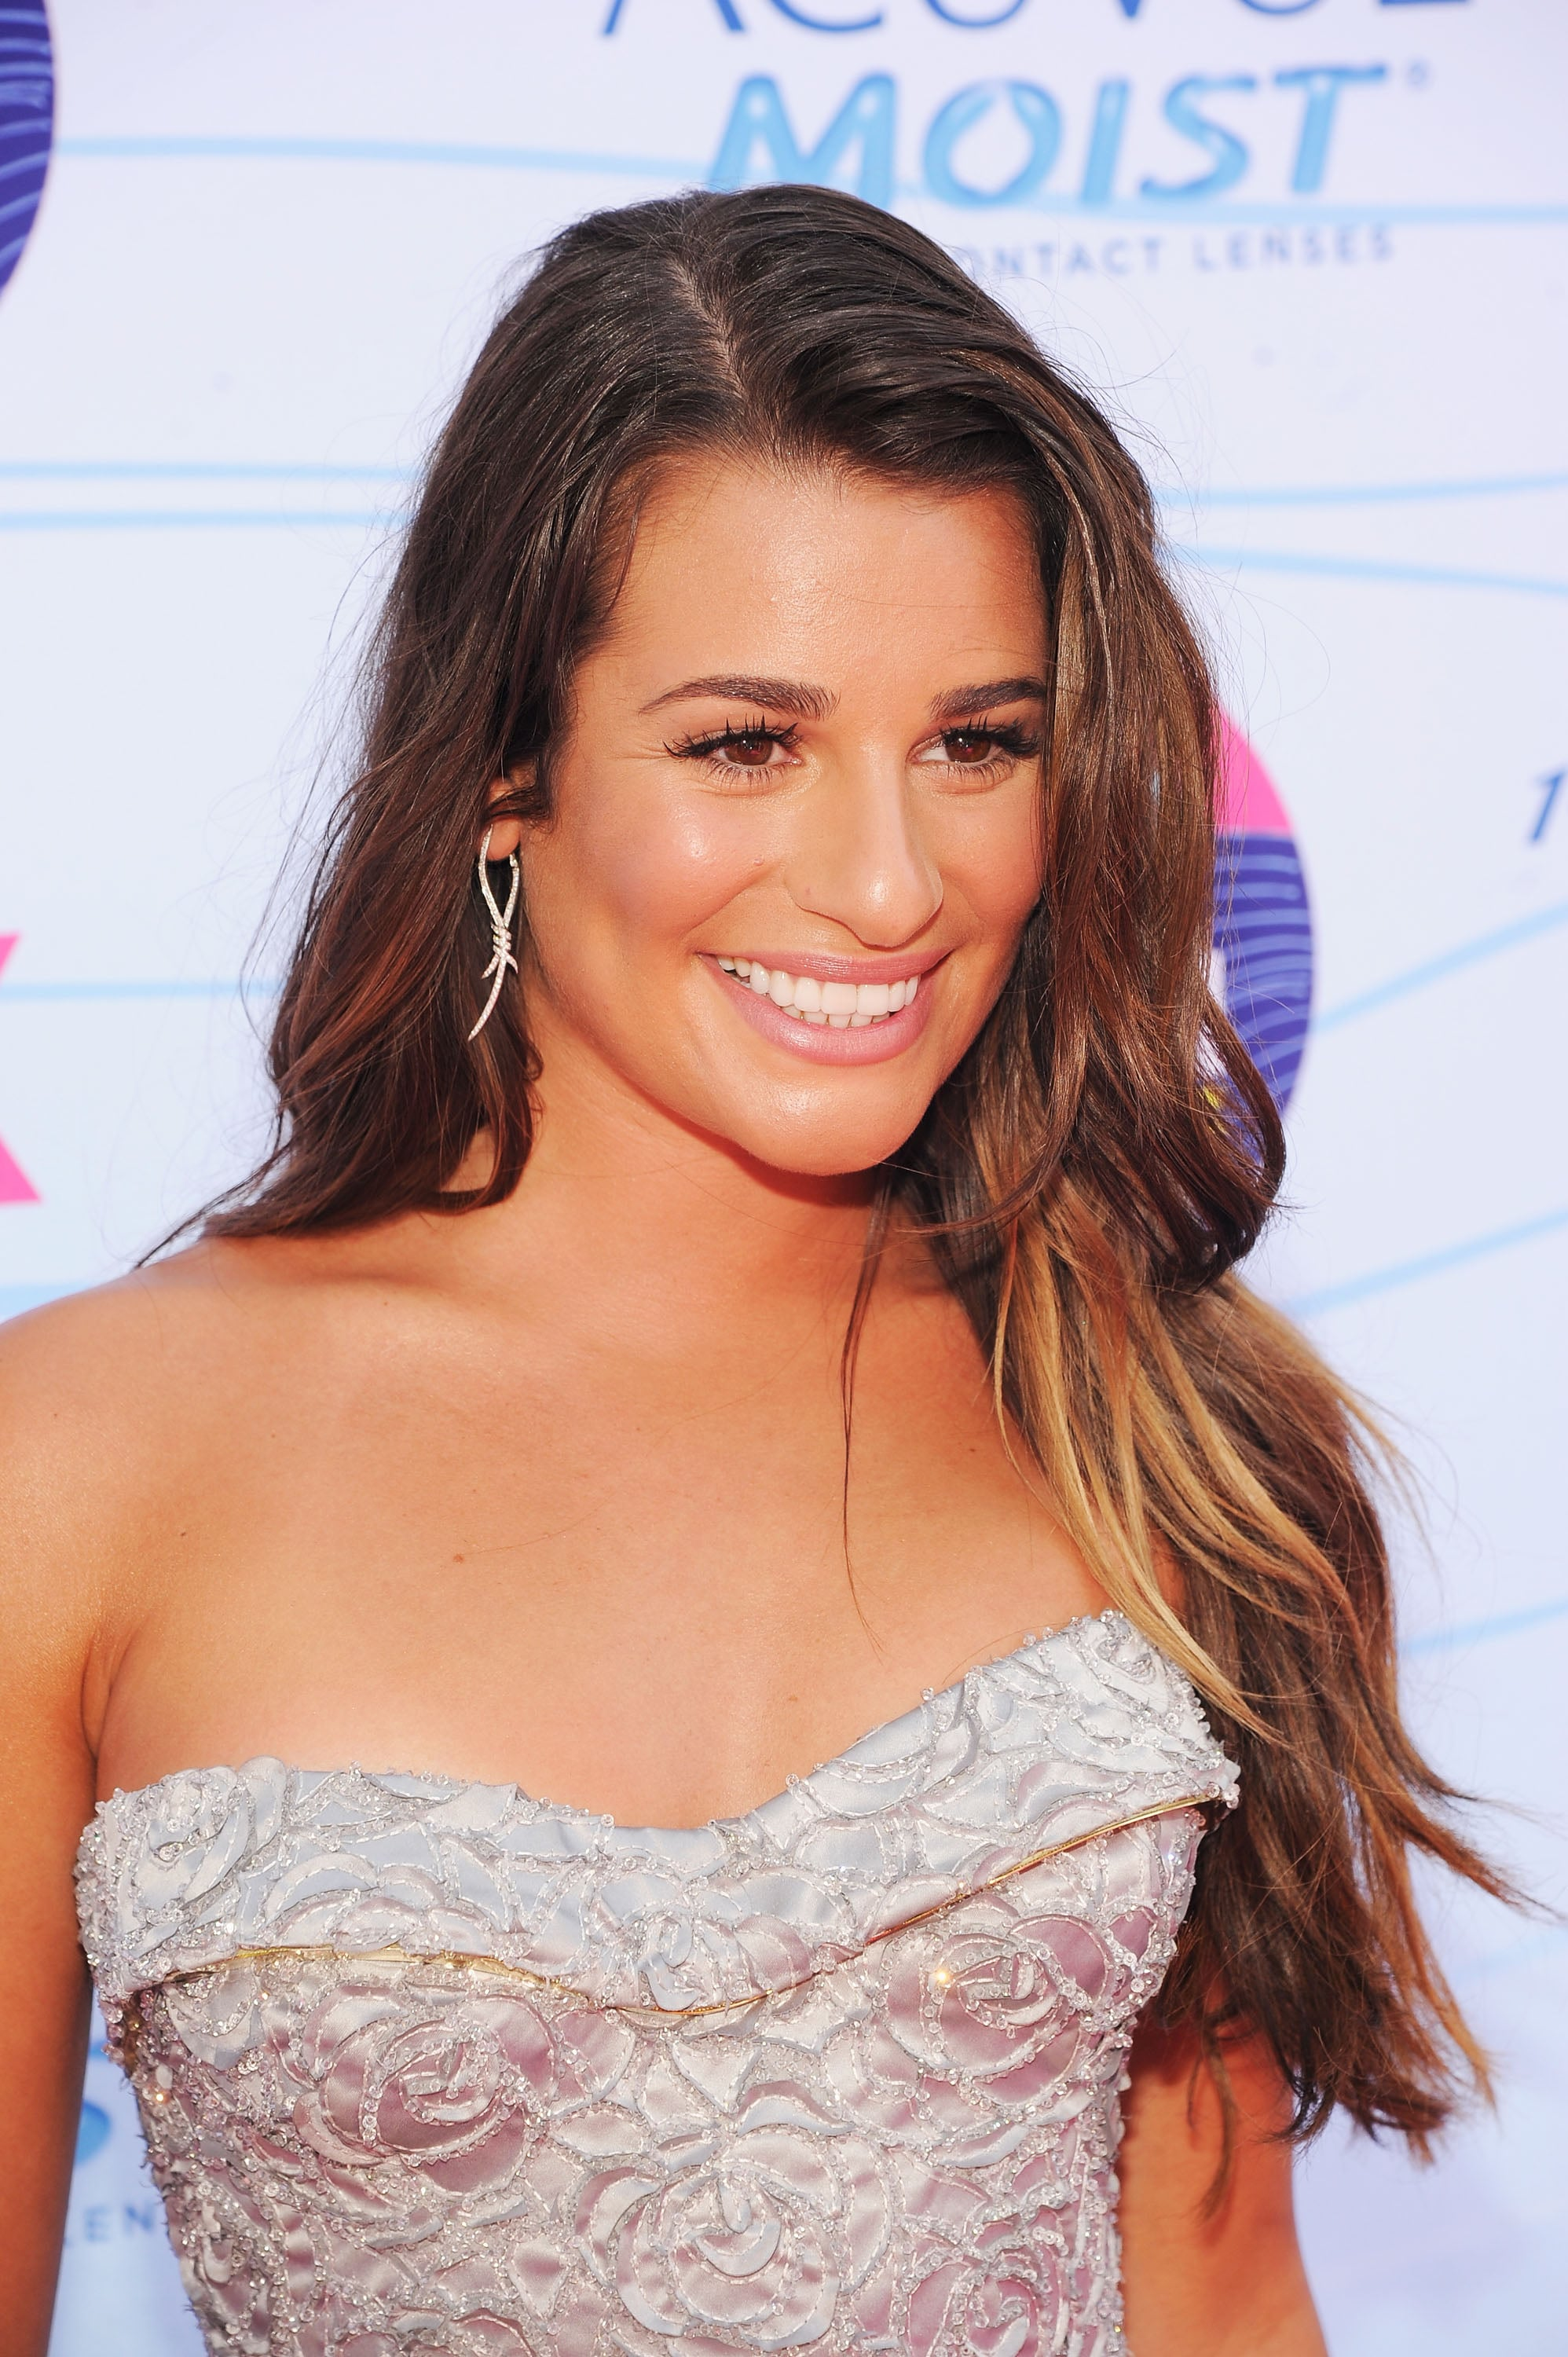 Lea Michele wore her hair down at the Teen Choice Awards.